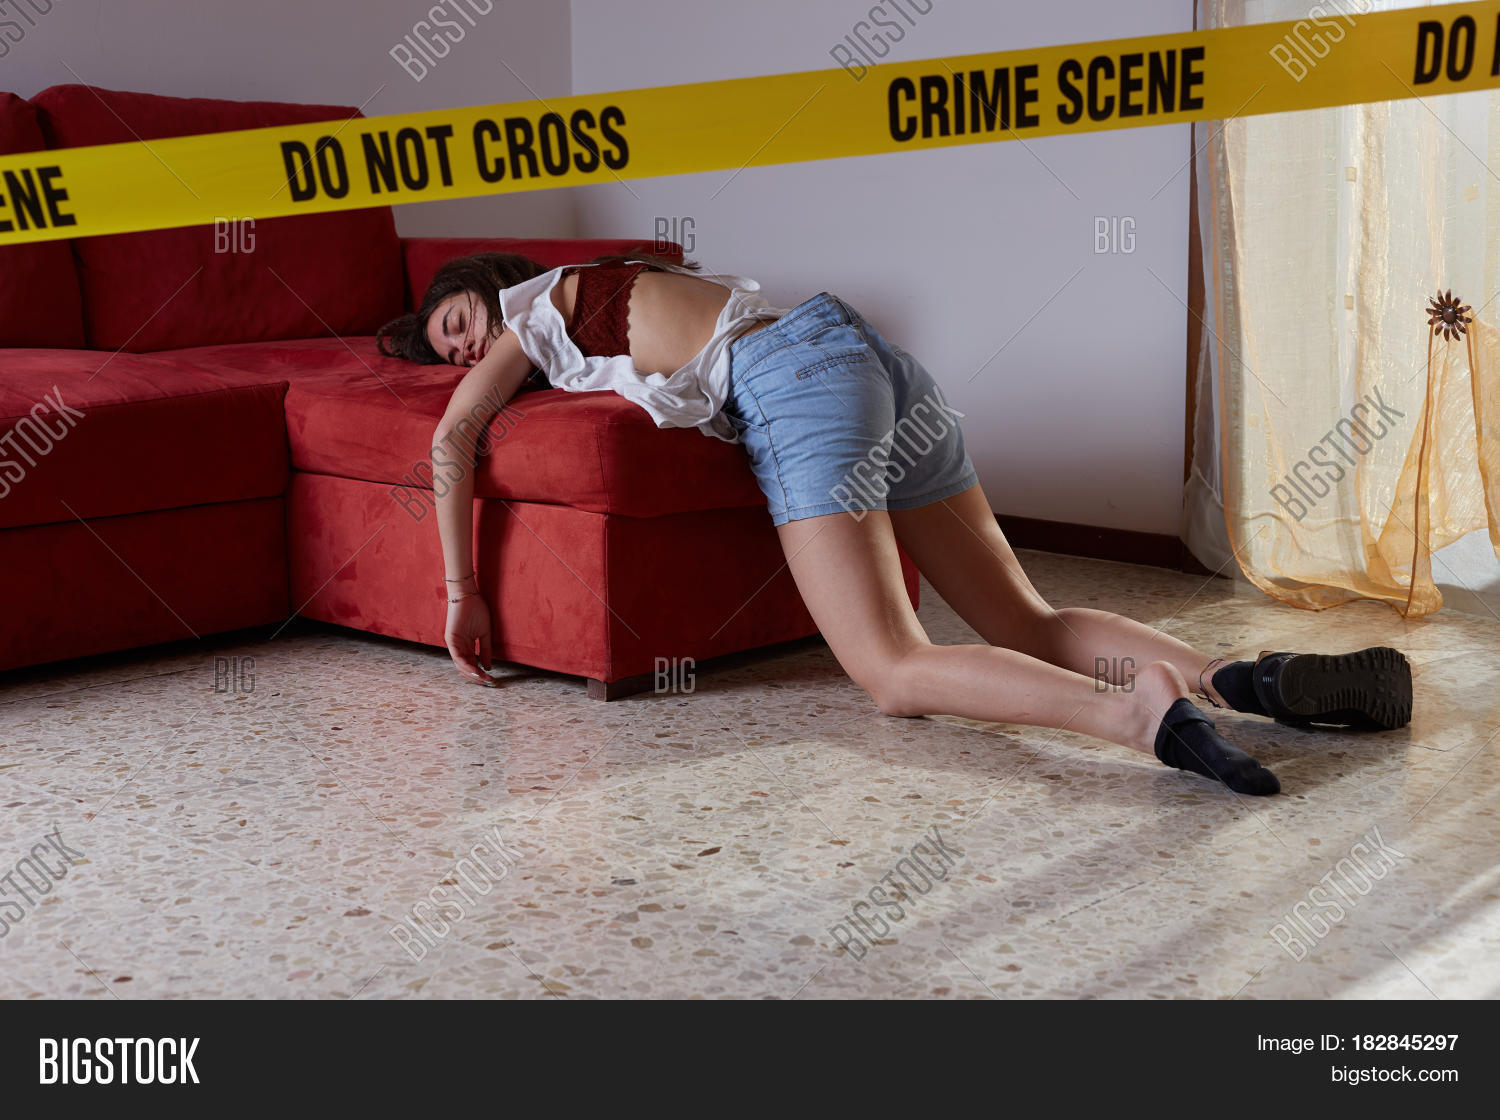 Crime Scene Simulation Image Amp Photo Free Trial Bigstock